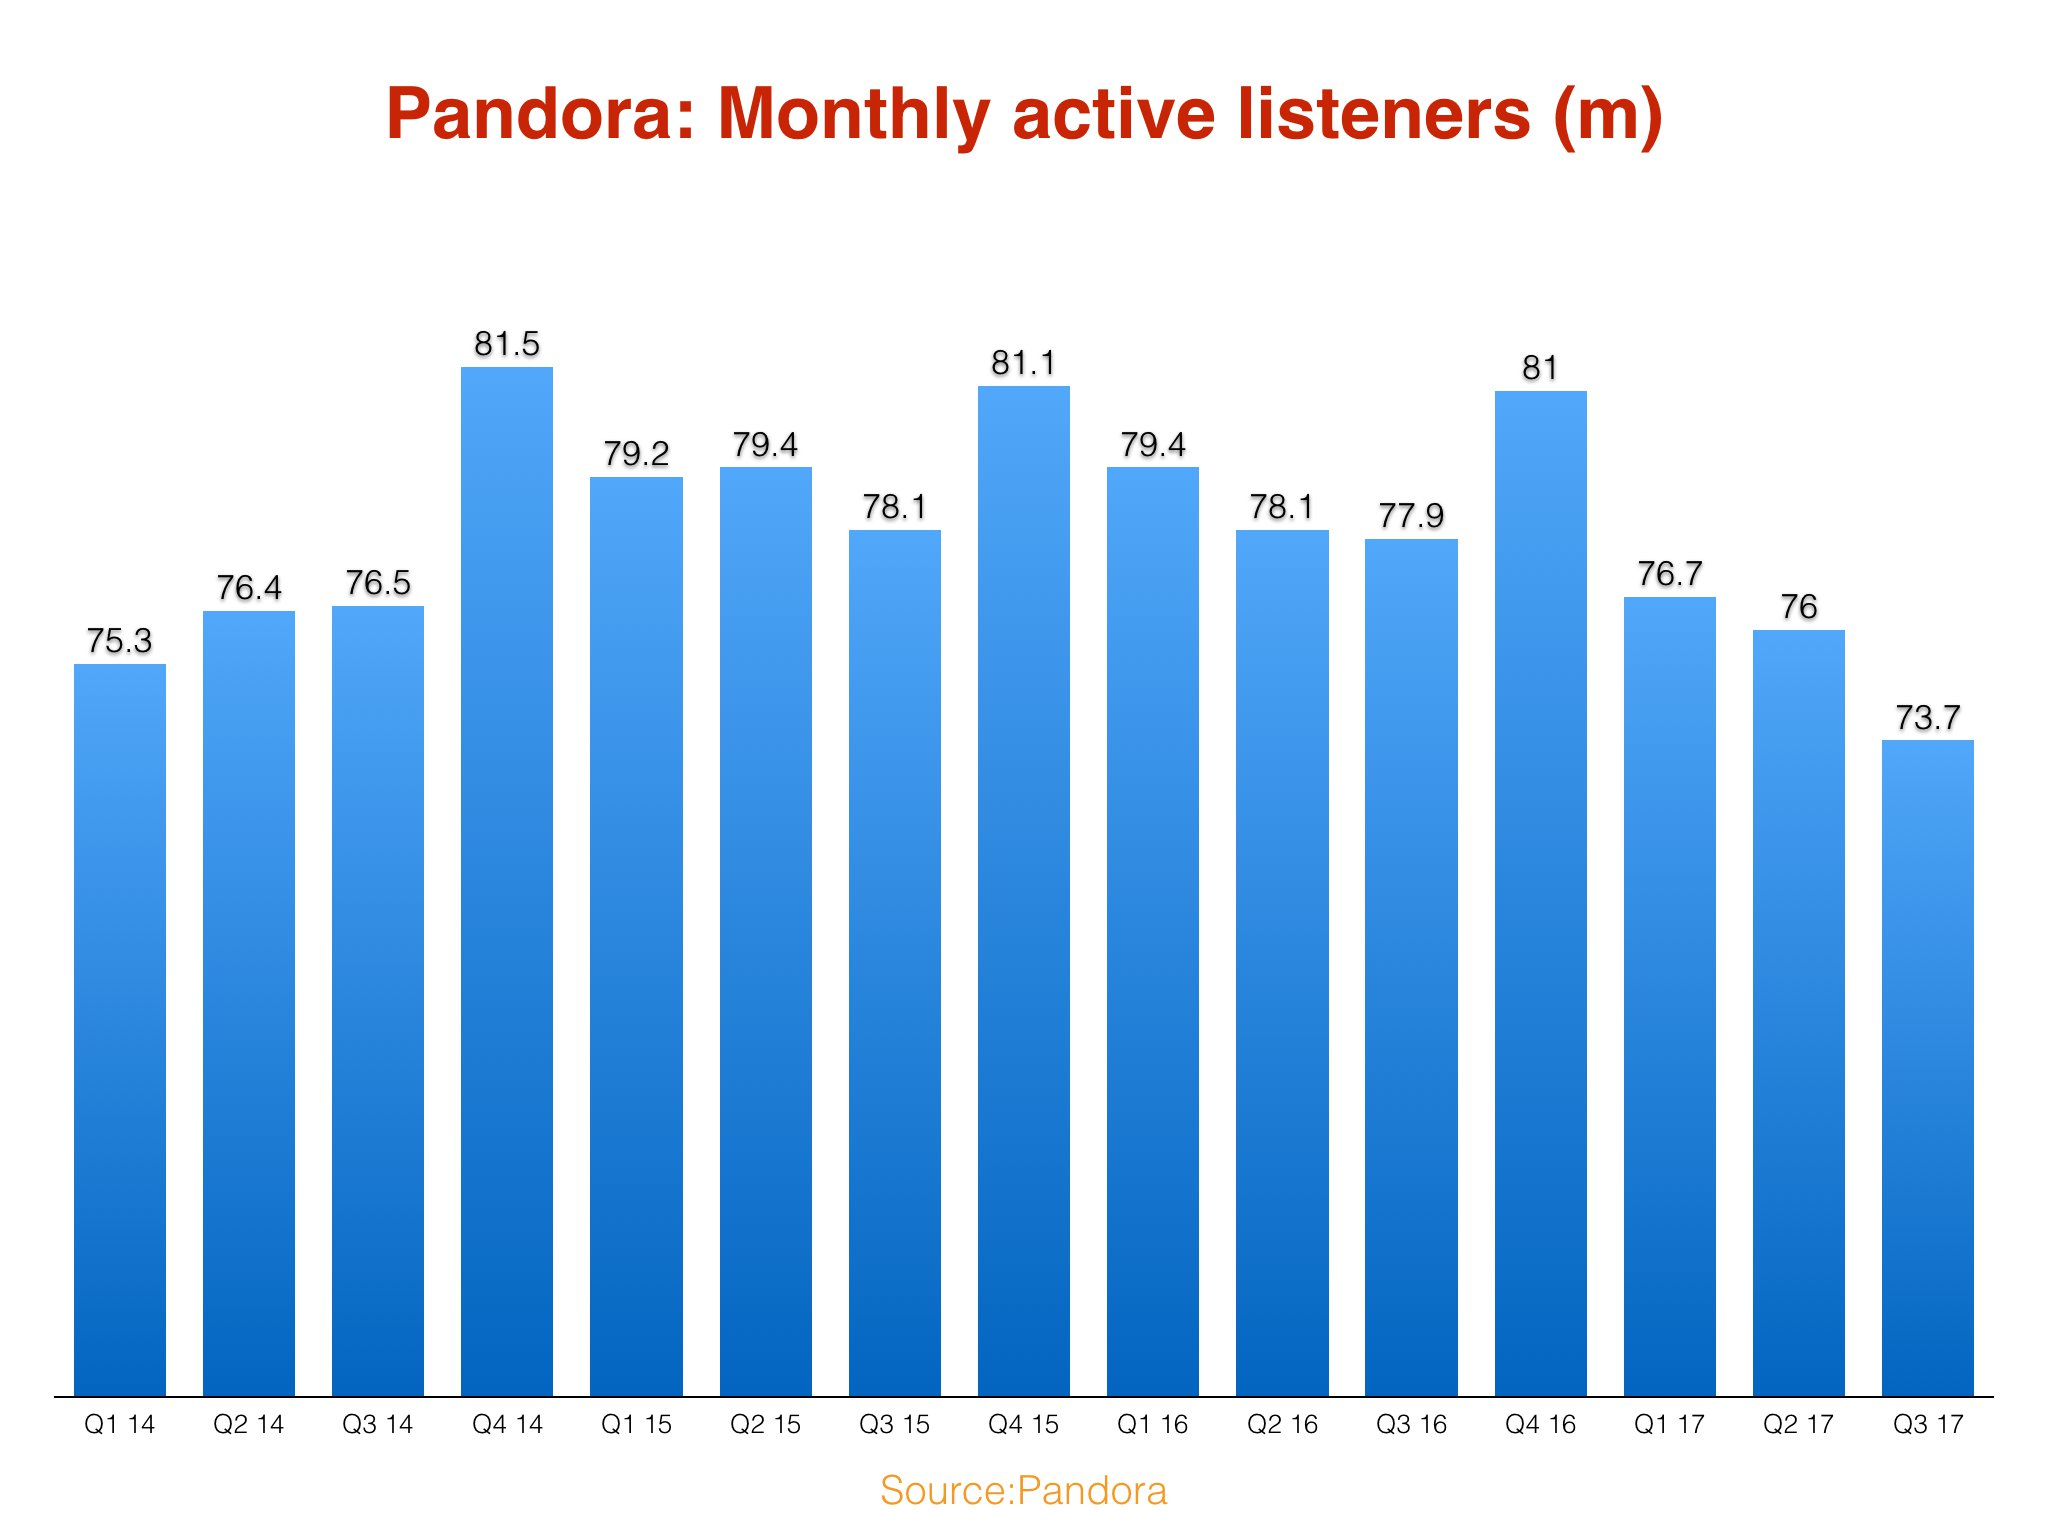 Pandora to push 'aggressive' transformation plan, starting with job cuts